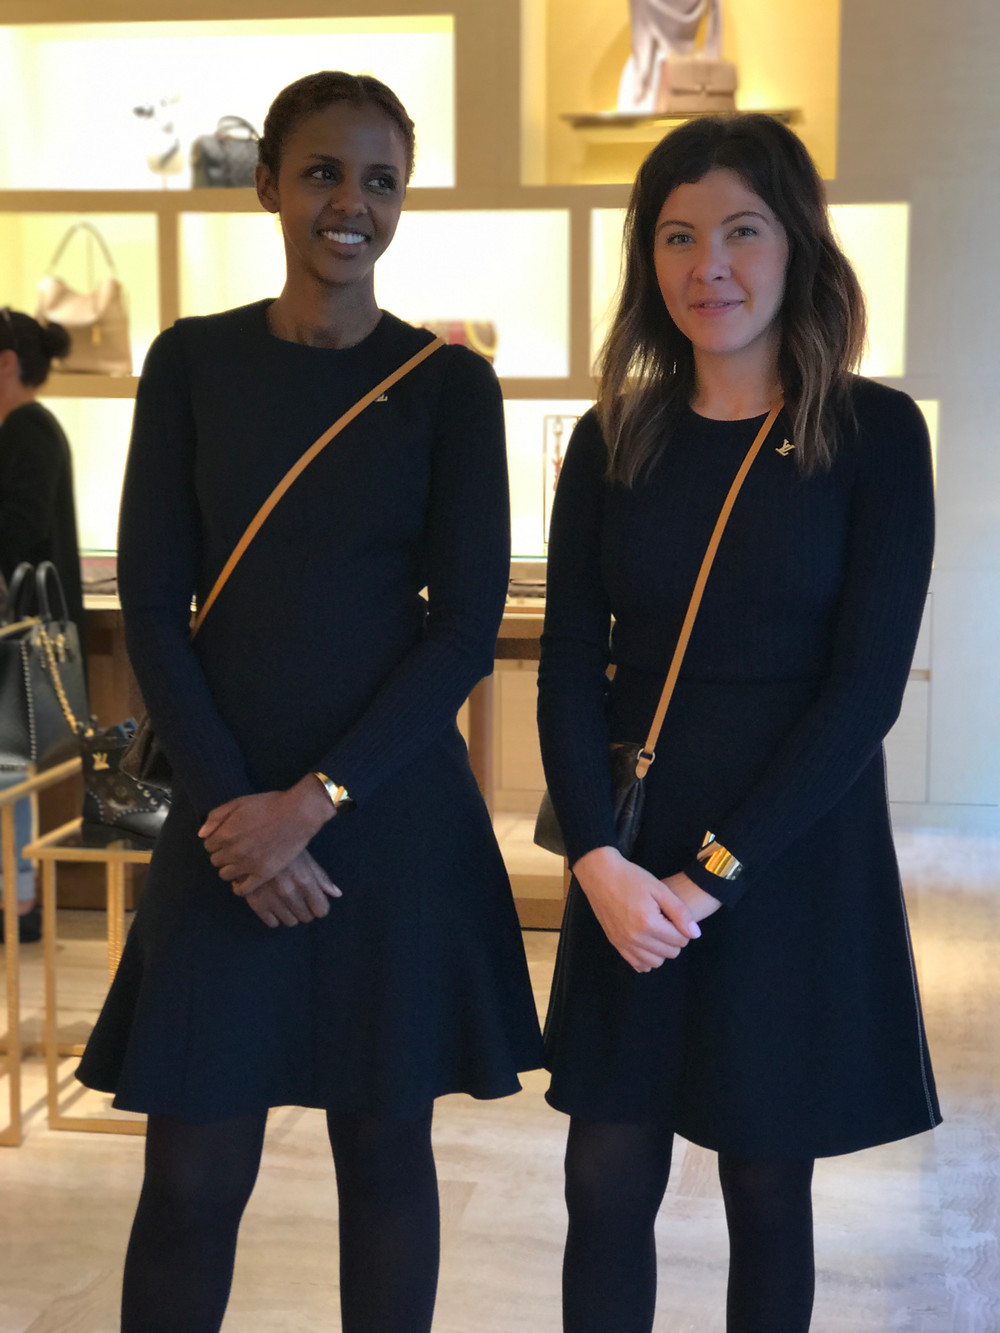 My favorite staff at Louis Vuitton in Oslo